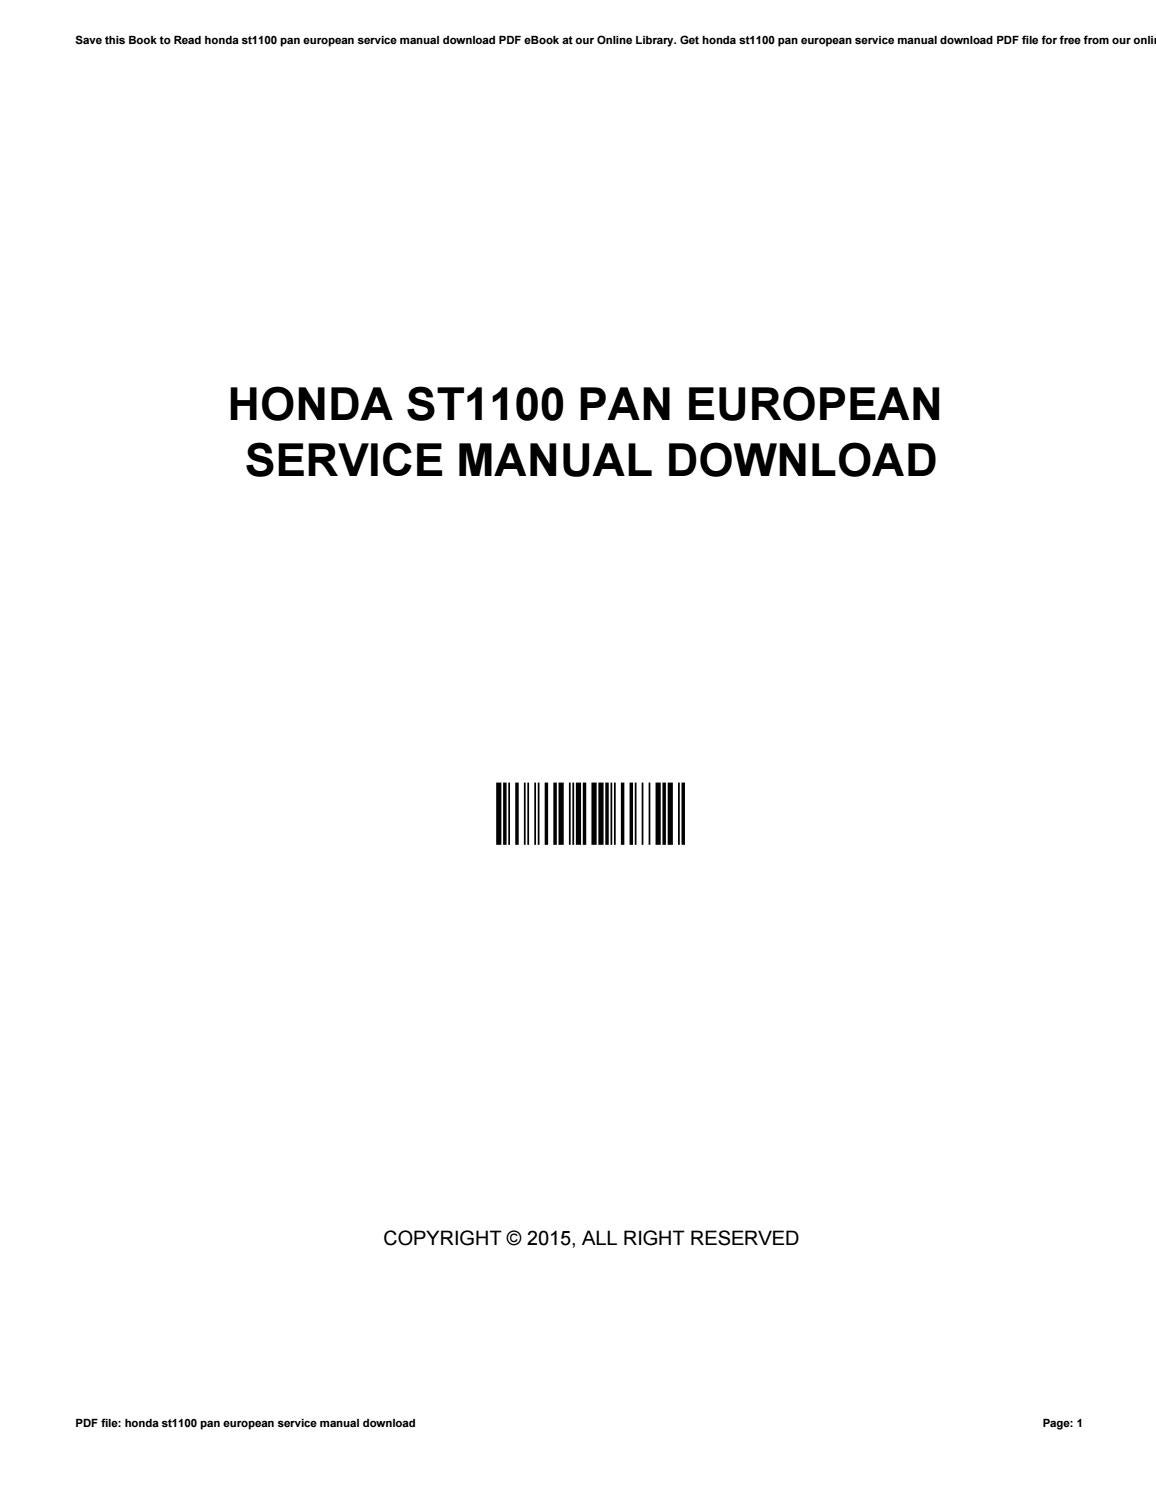 Honda st1100 pan european service manual download by MelindaSmith4148 -  issuu